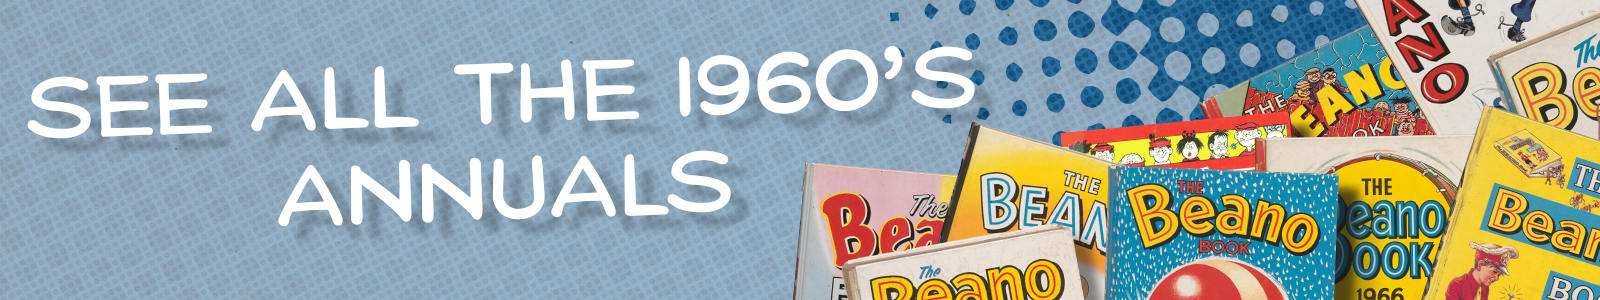 See all annuals - 1960's Beano books